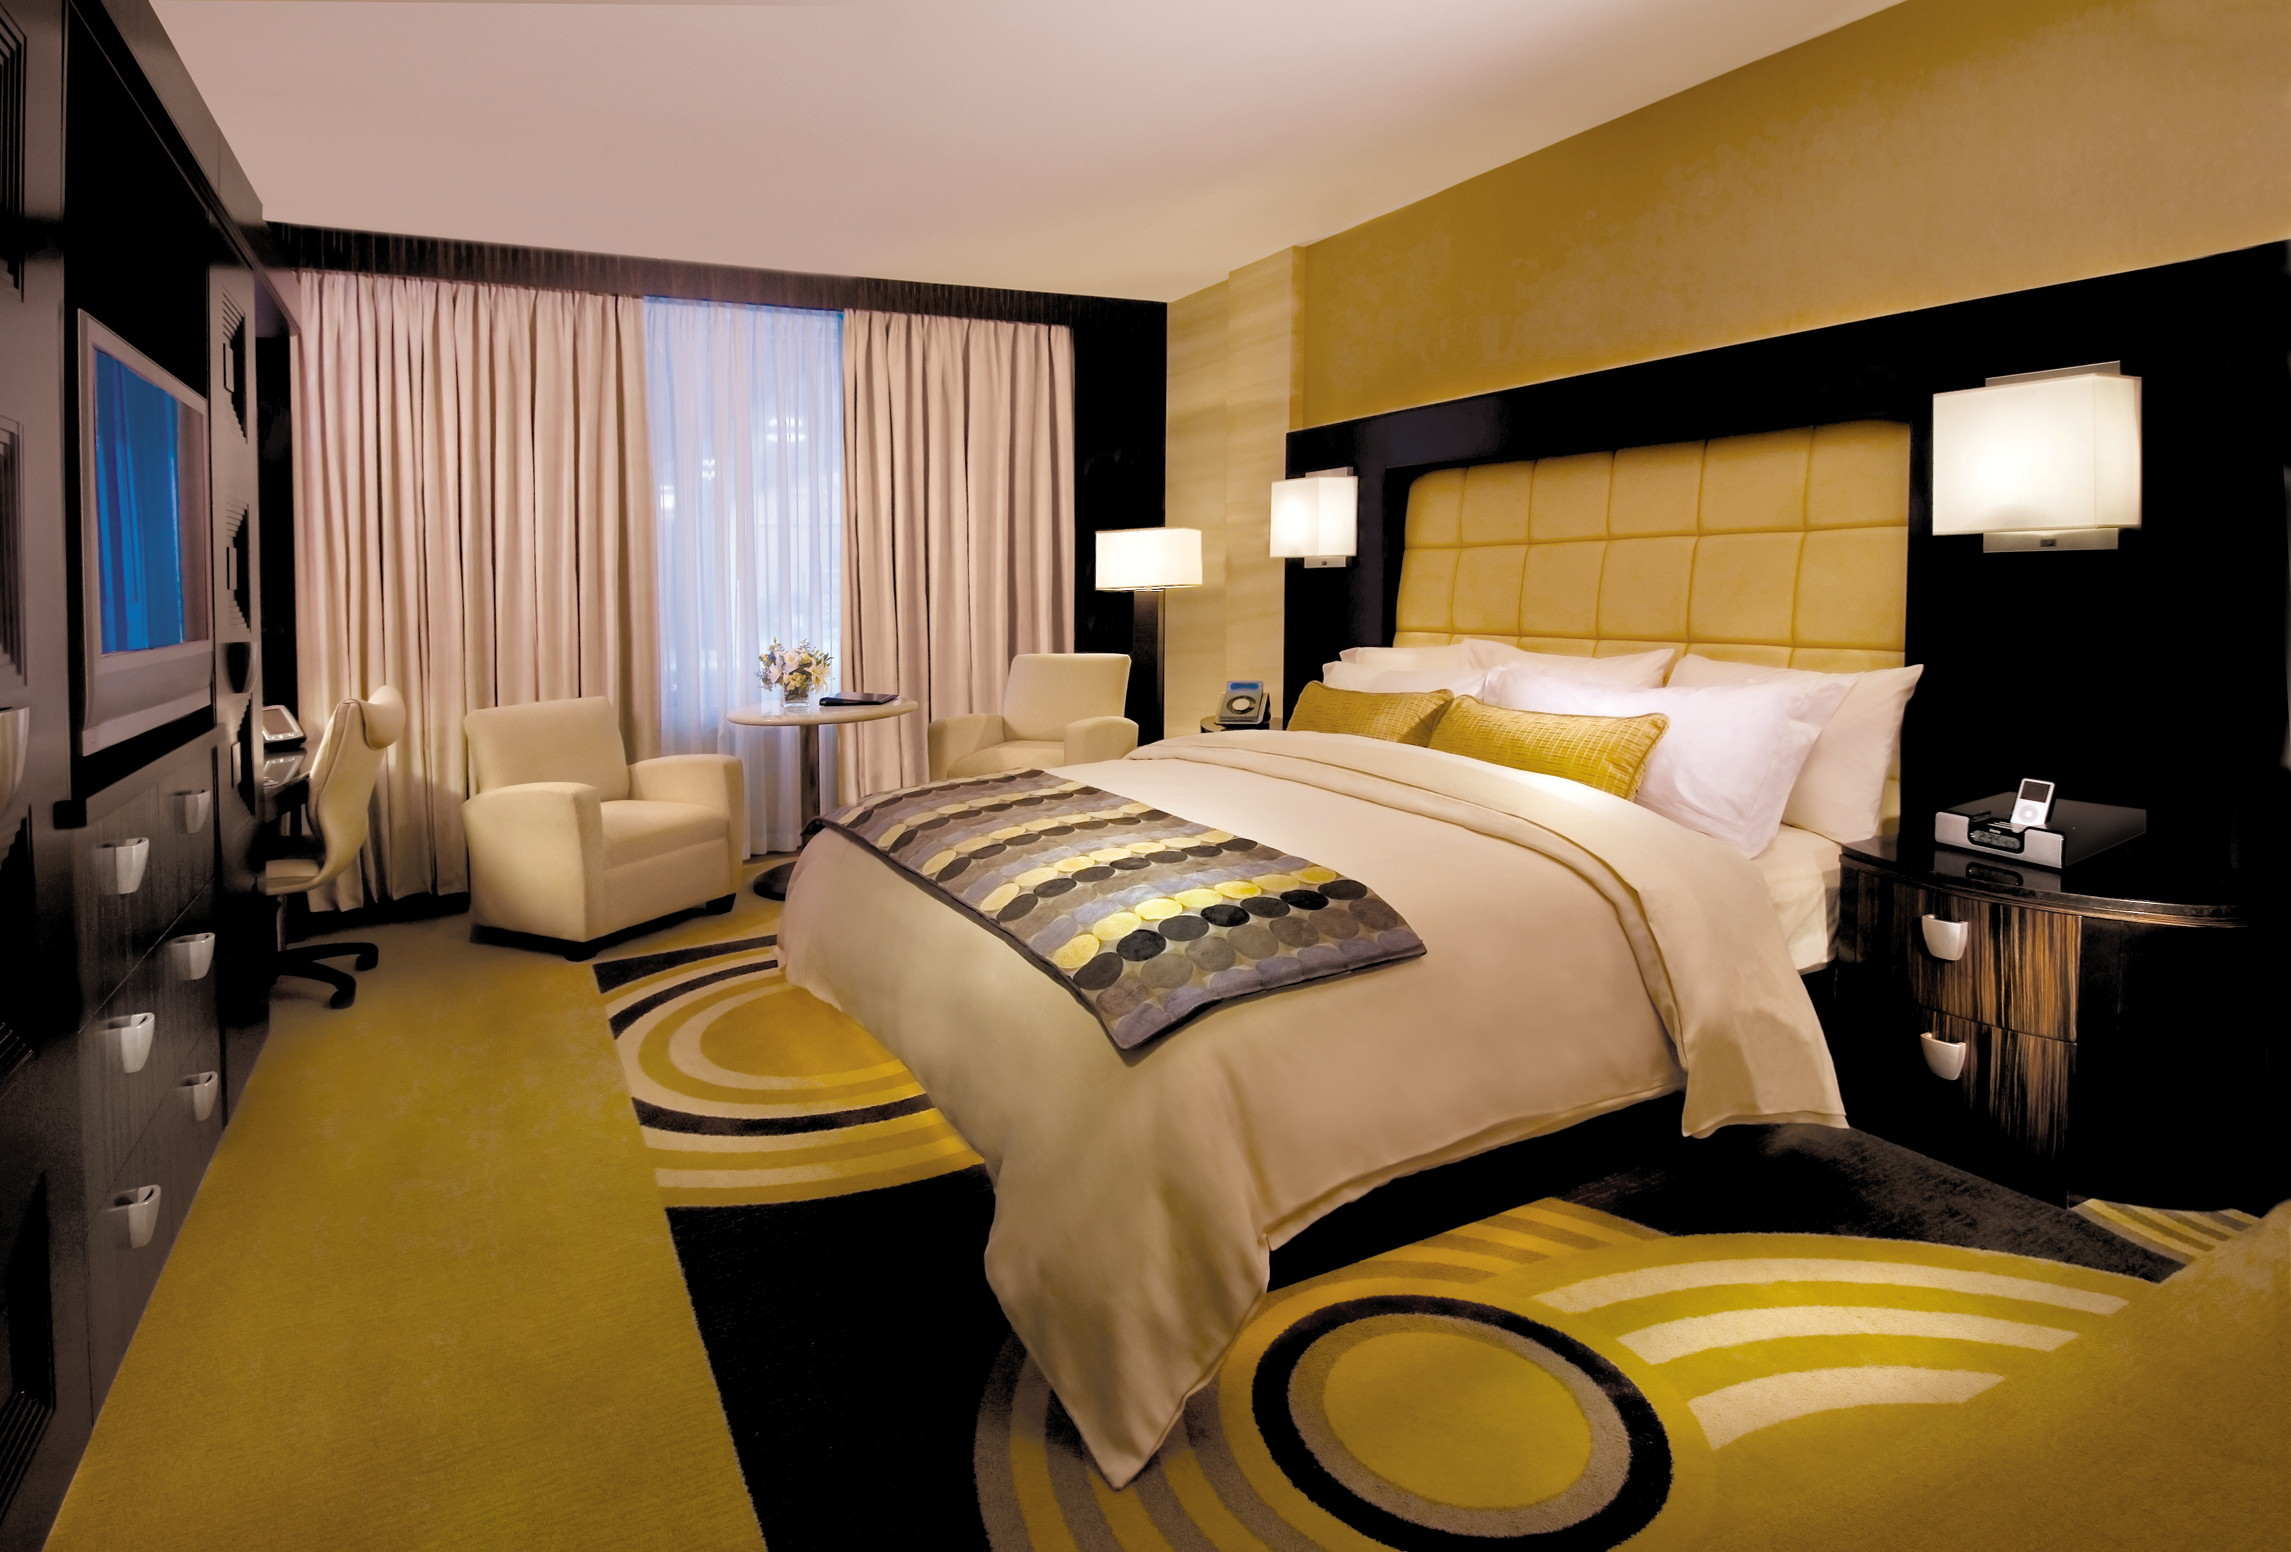 credit google images a survey of surfaces in hotel rooms finds ...